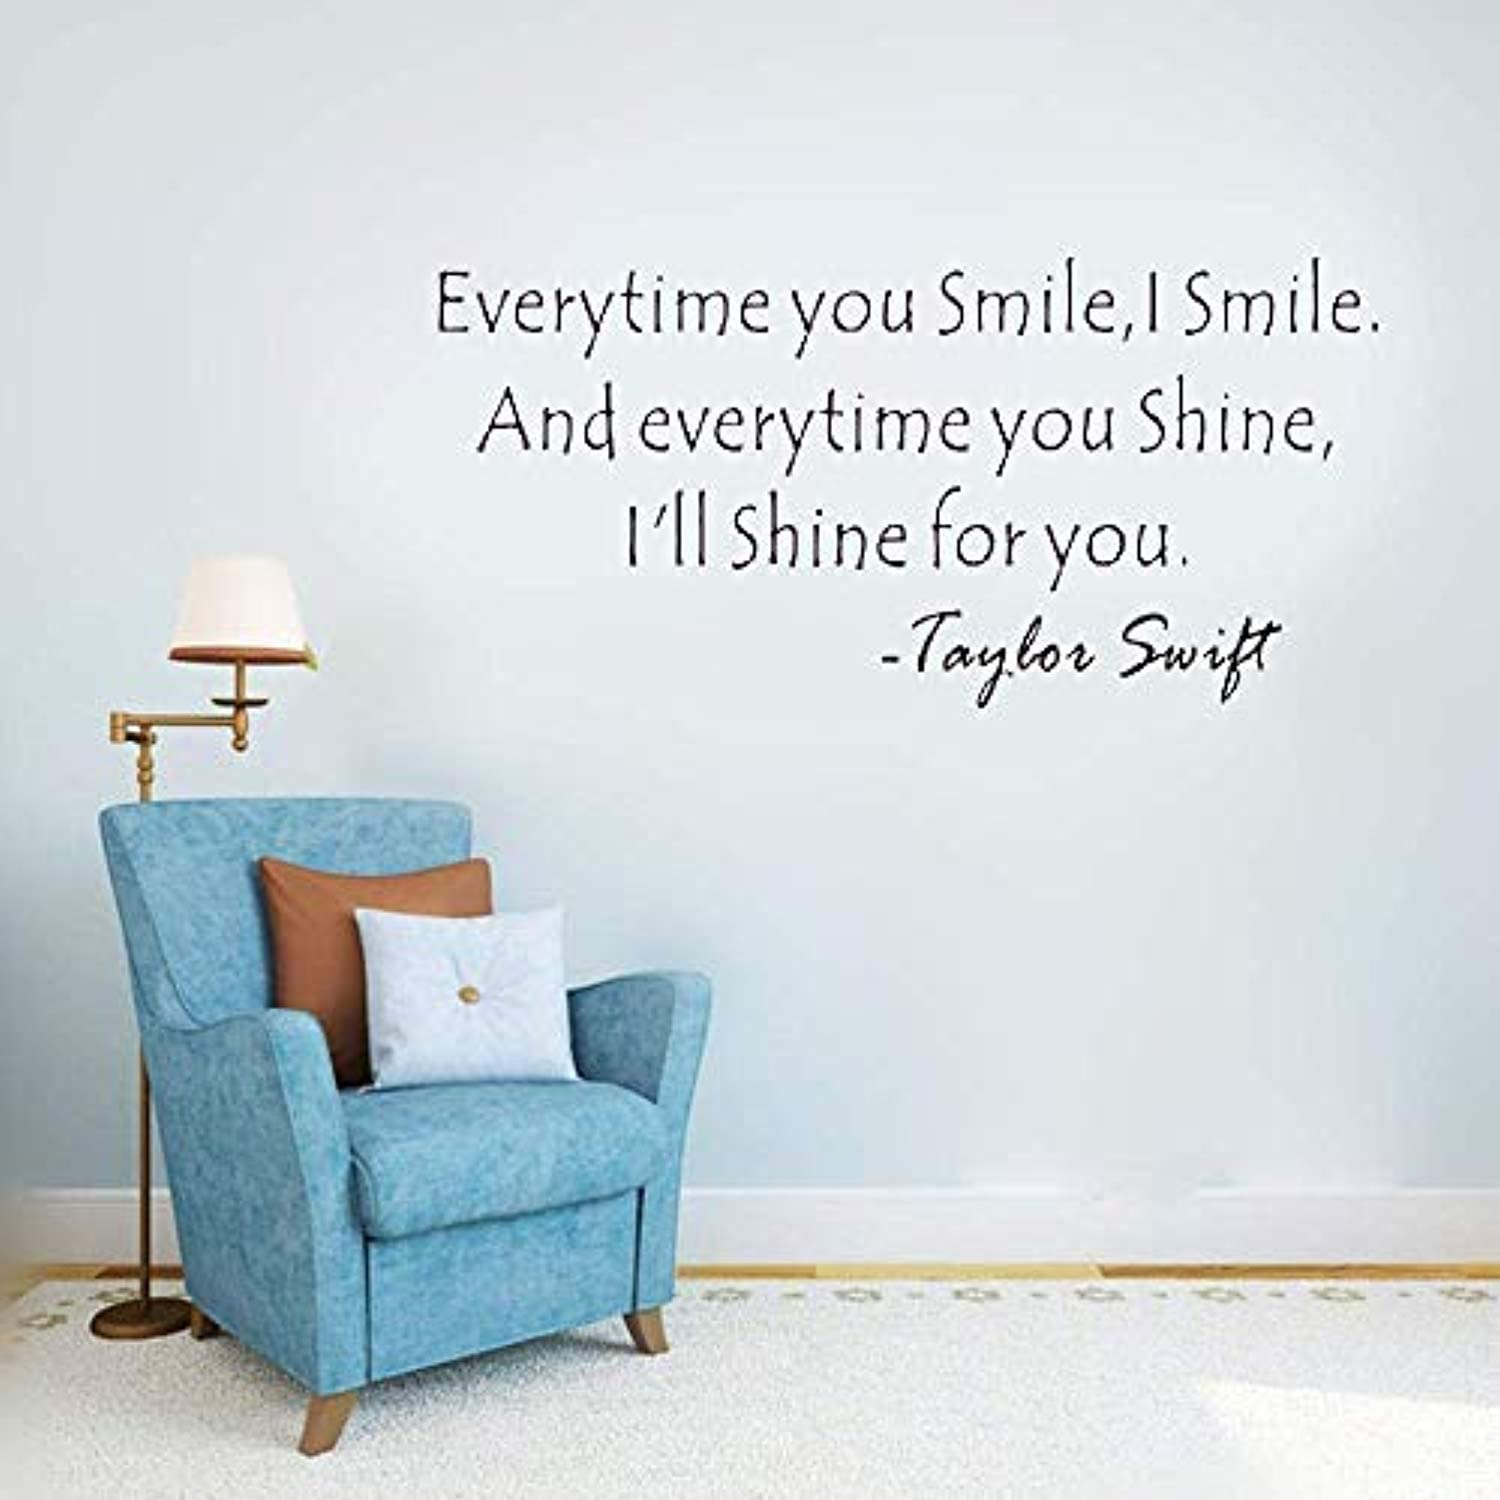 Bro Decals Wall Vinyl Decal I'll Shine for You - Taylor Swift Vinyl Decor Sticker Home Art Print BR7754